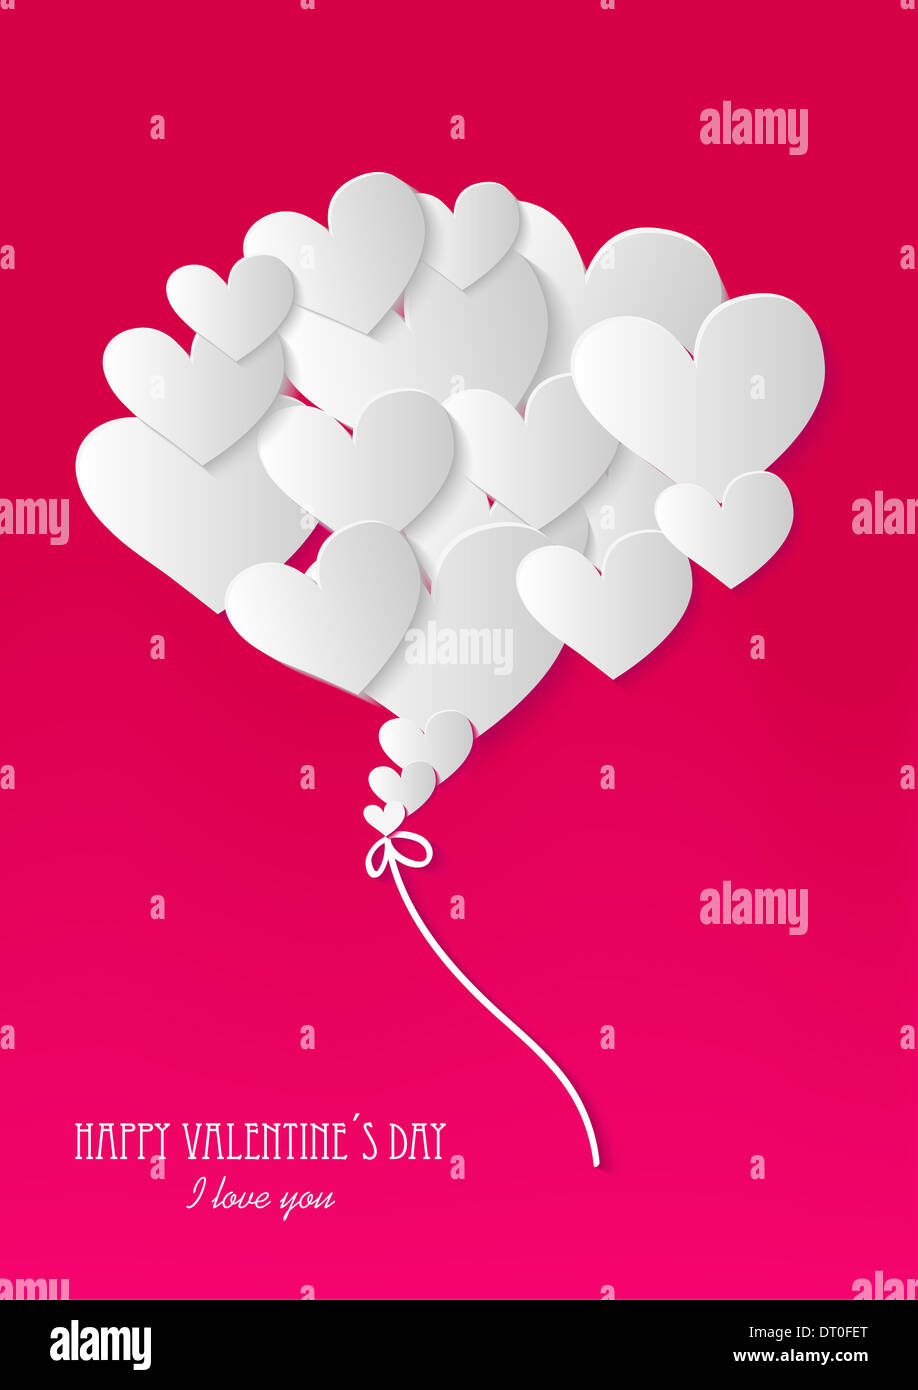 Scrap booking Valentines day heart love element background. EPS10 vector file organized in layers for easy editing. - Stock Image